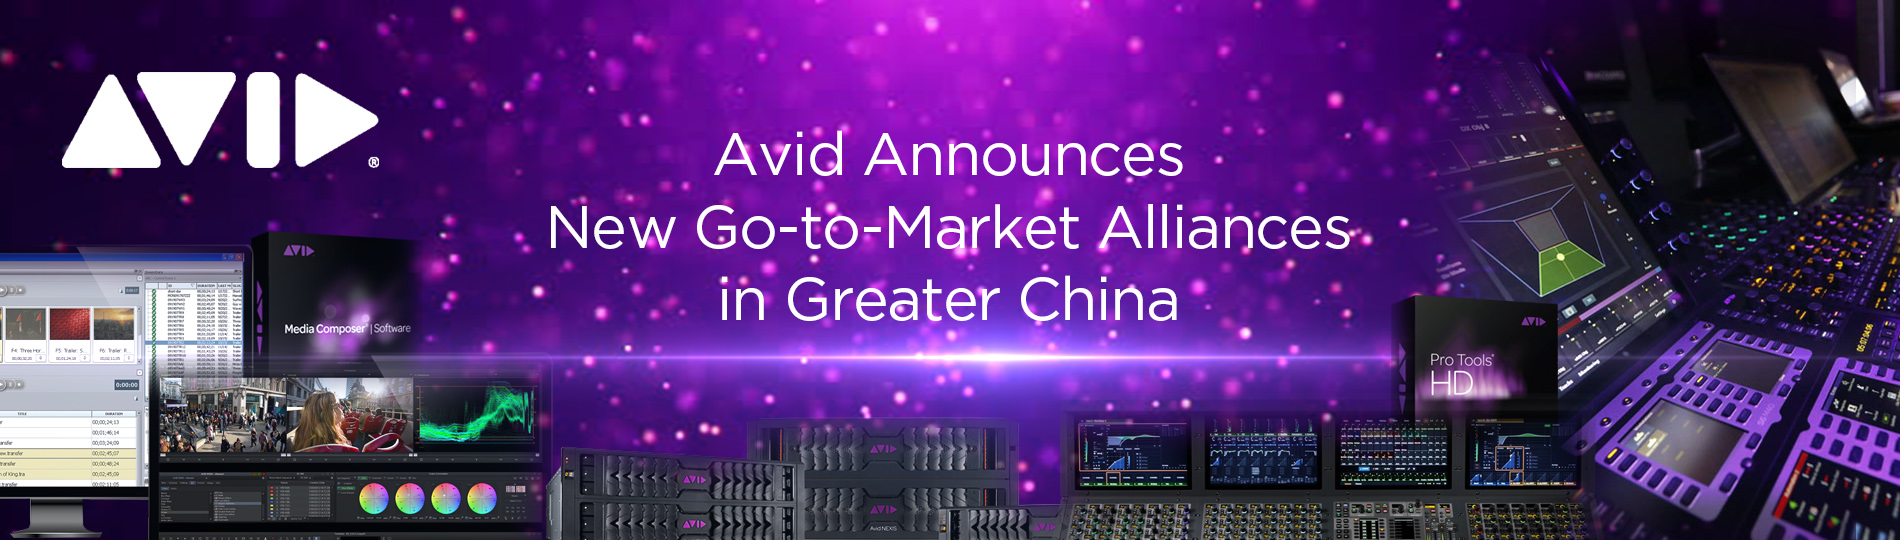 Avid Announces New Go-to-Market Alliance in Greater China